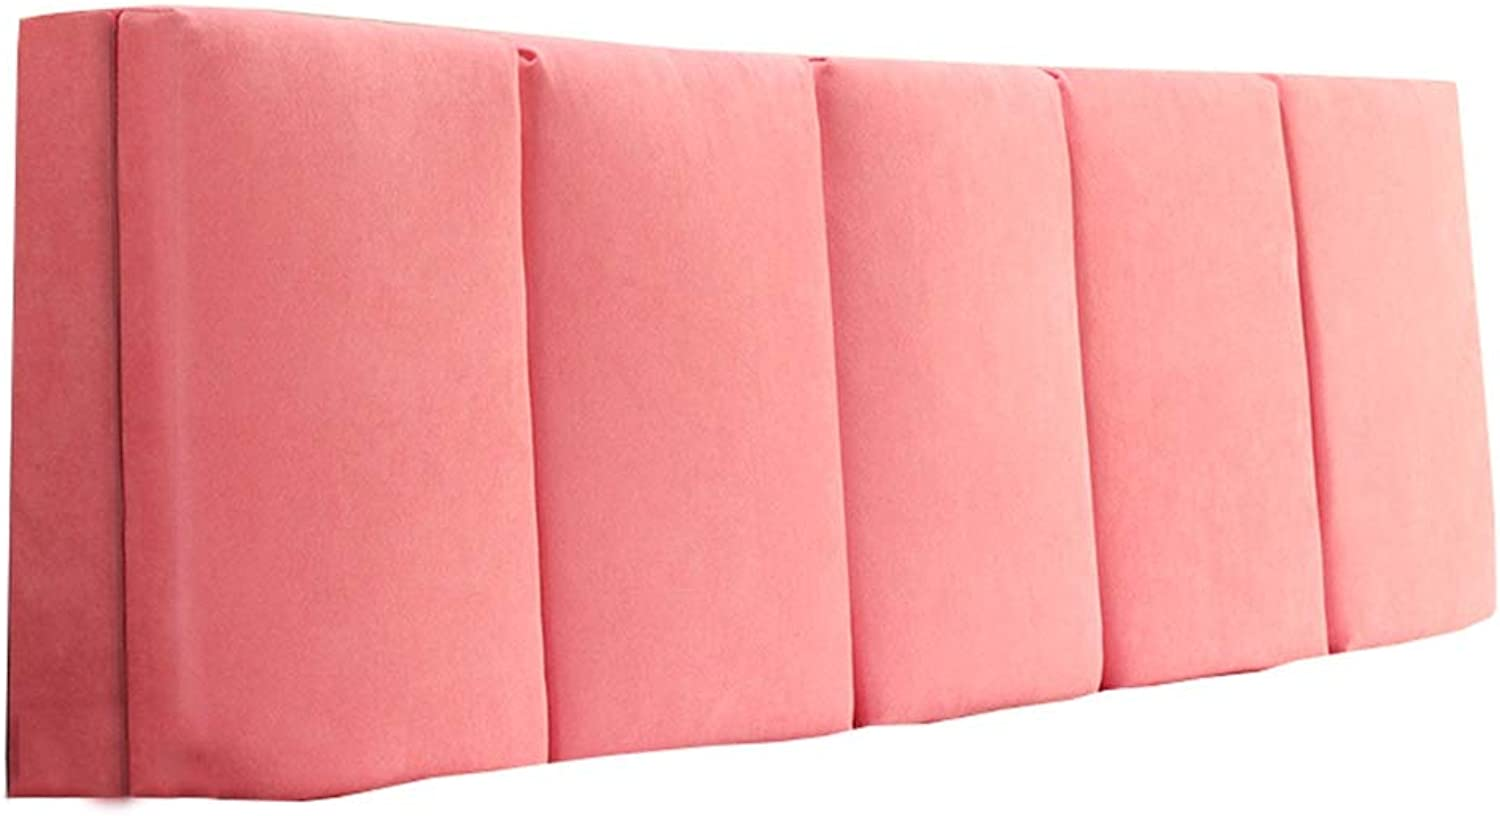 WENZHE Upholstered Fabric Headboard Bedside Cushion Pads Cover Bed Wedges Backrest Waist Pad Cloth Waist Belt Soft Case Home Hotel Backrest Washable, 4 colors (color   A-Pink, Size   120x55x5cm)